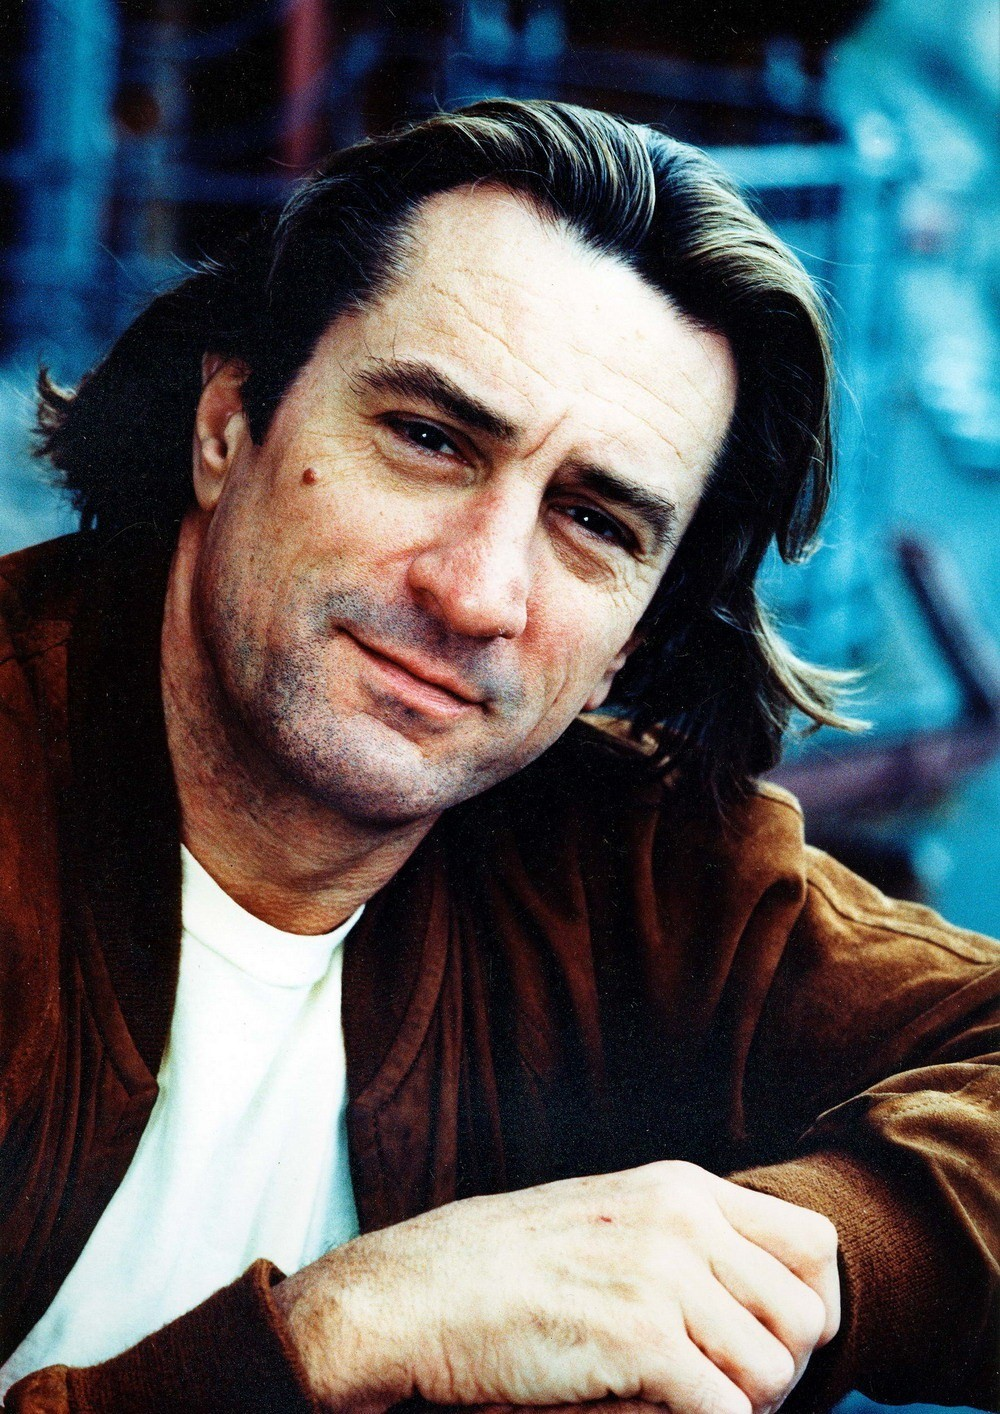 DE NIRO FANS - ARE YOU LOOKING AT ME? - Comic Book and ...